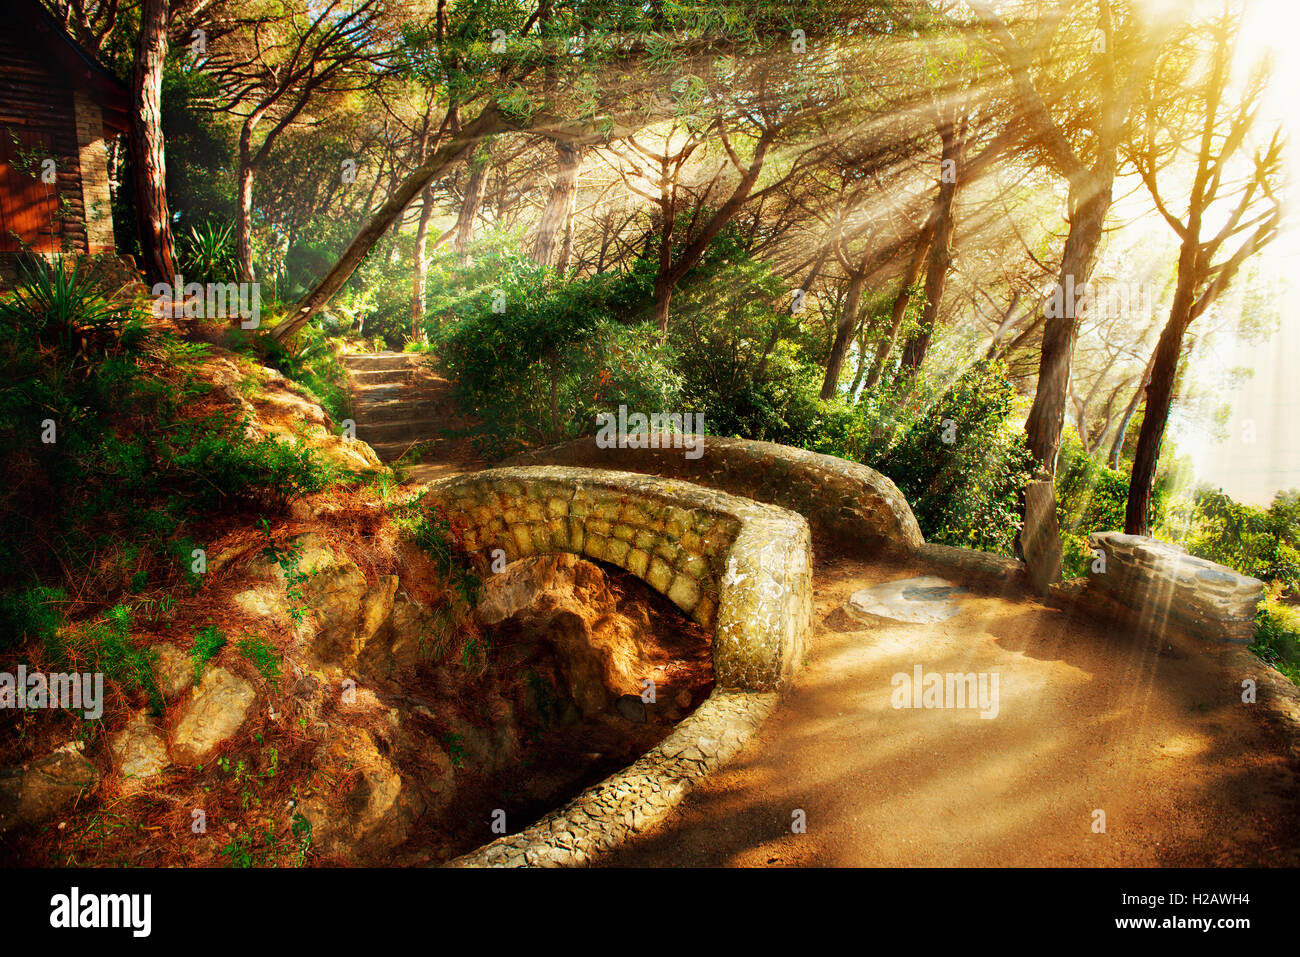 Mystical Park. Old Trees and Ancient Stone Bridge. Pathway - Stock Image